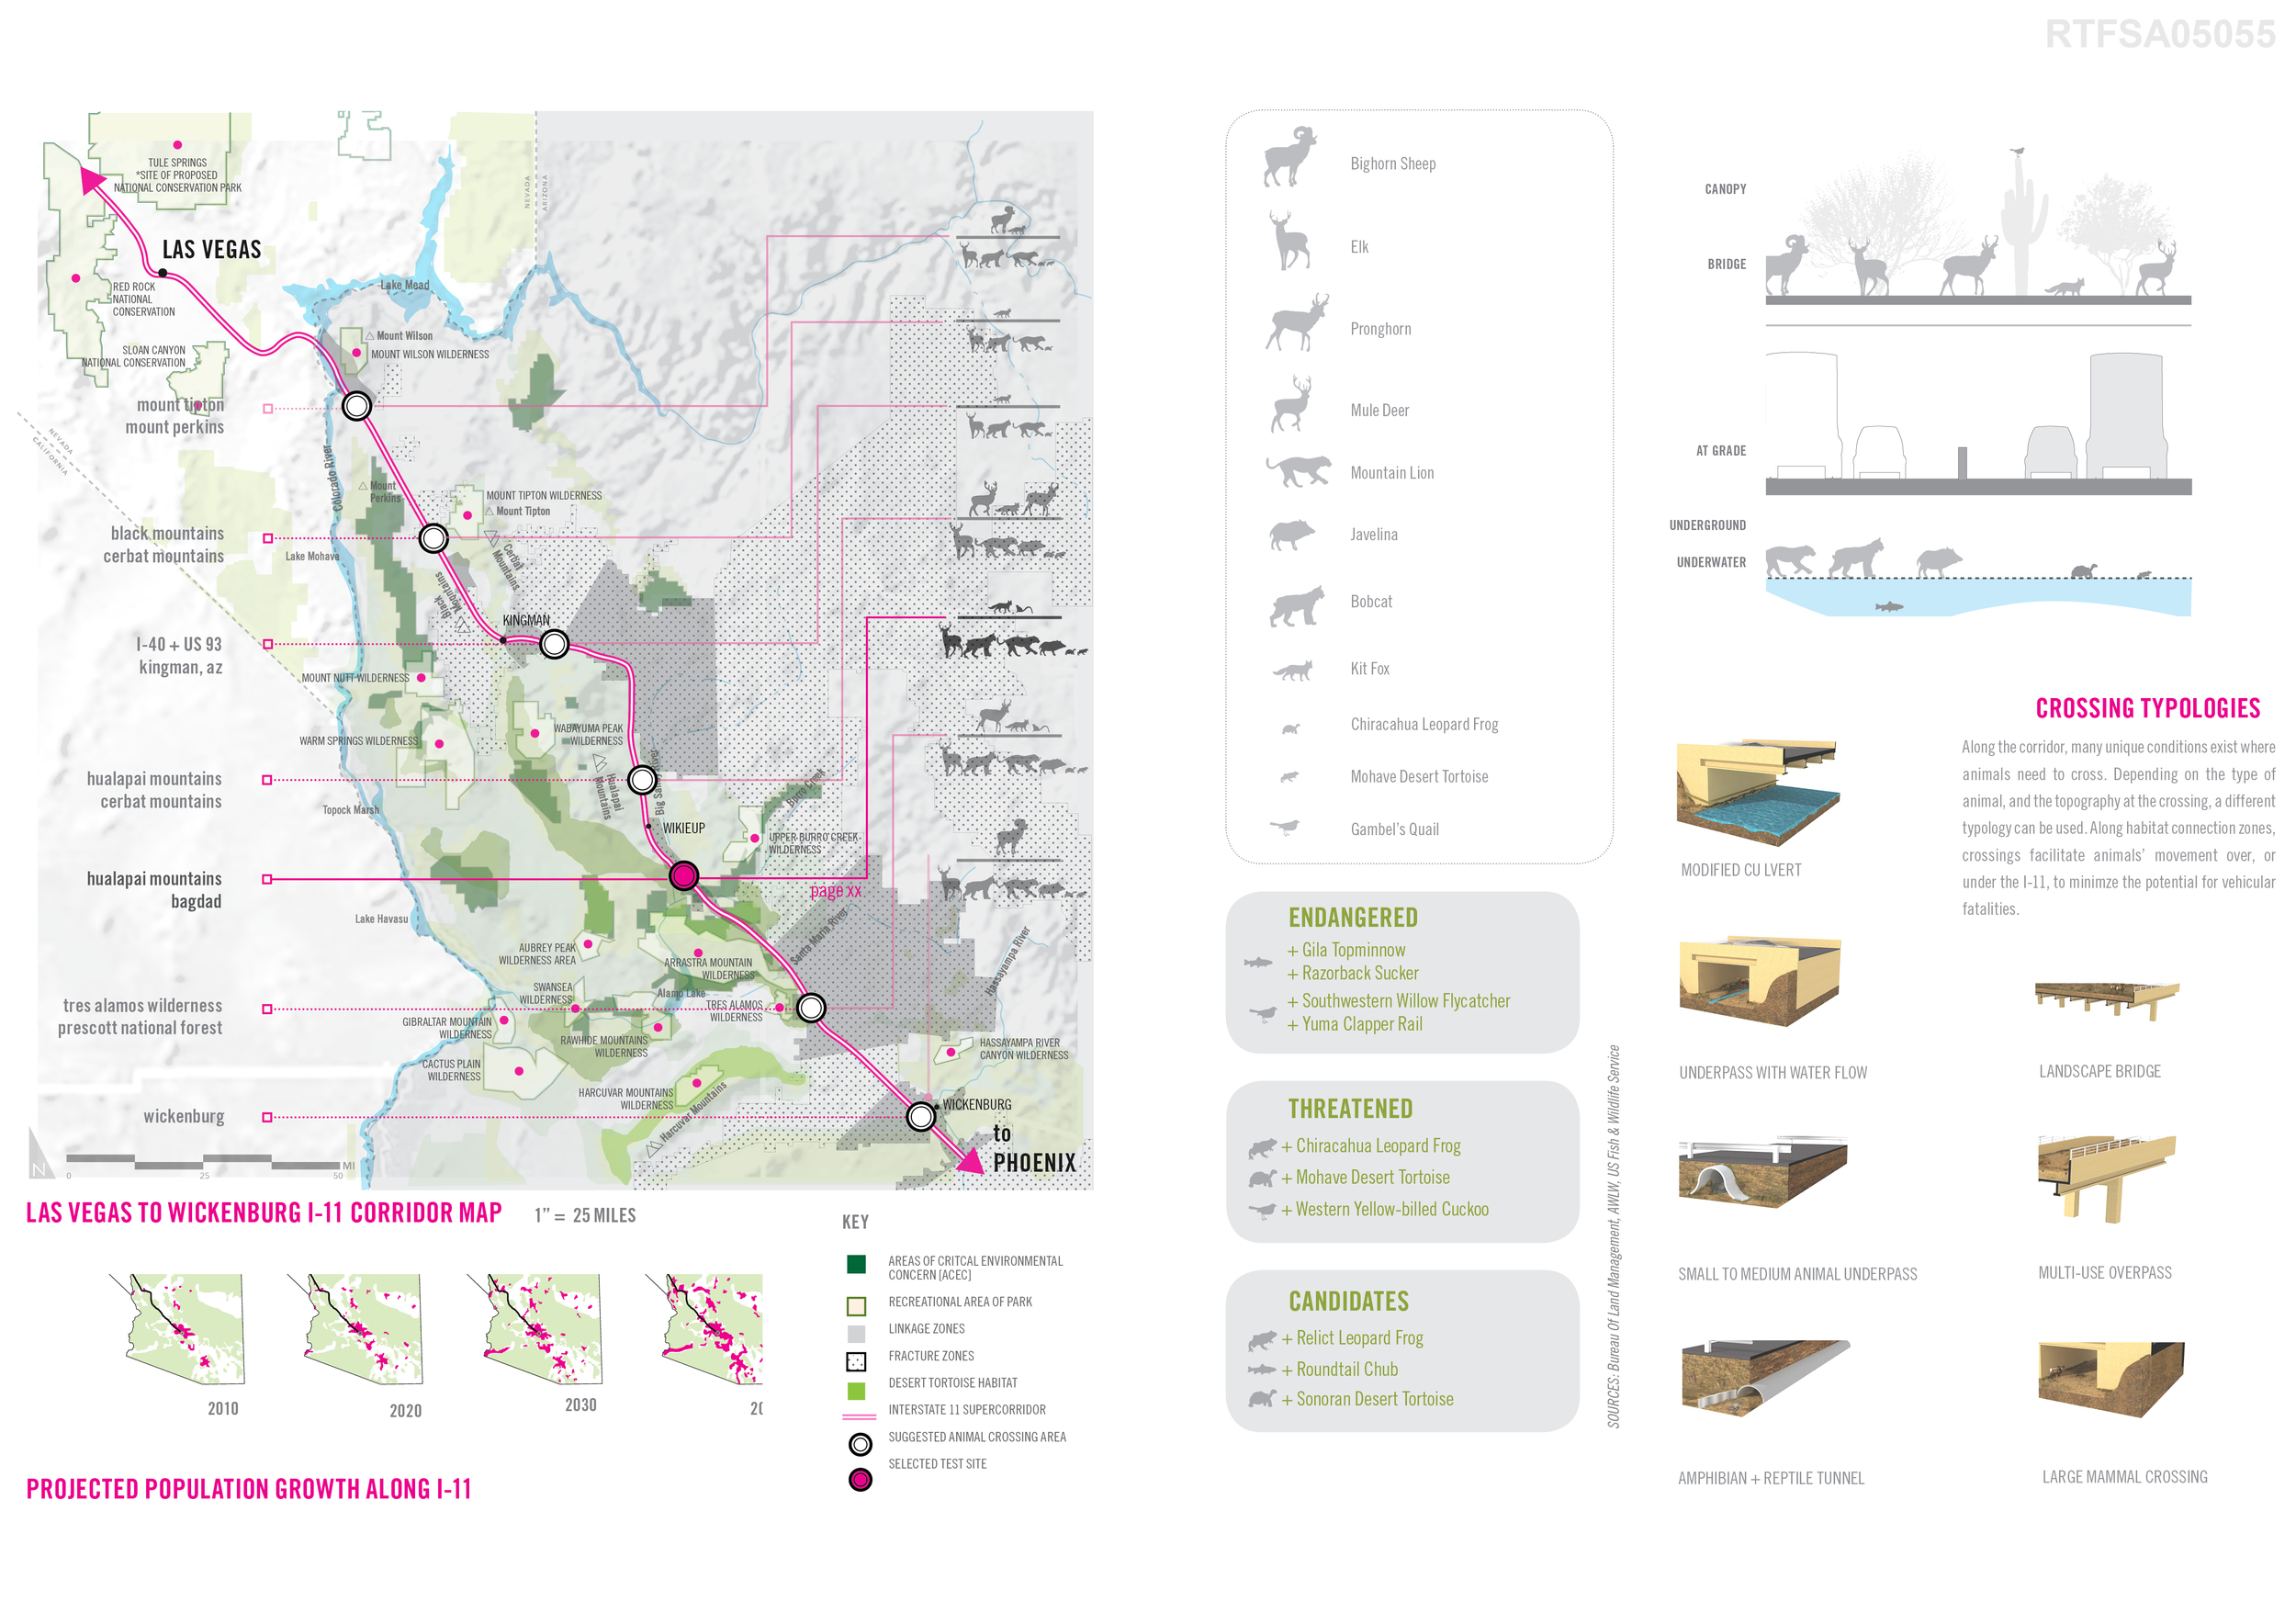 The proposed corridor runs through uniquely sensitive and high value ecological landscapes. The project team identified species zones and what types of overpasses and underpasses might be best for each area.